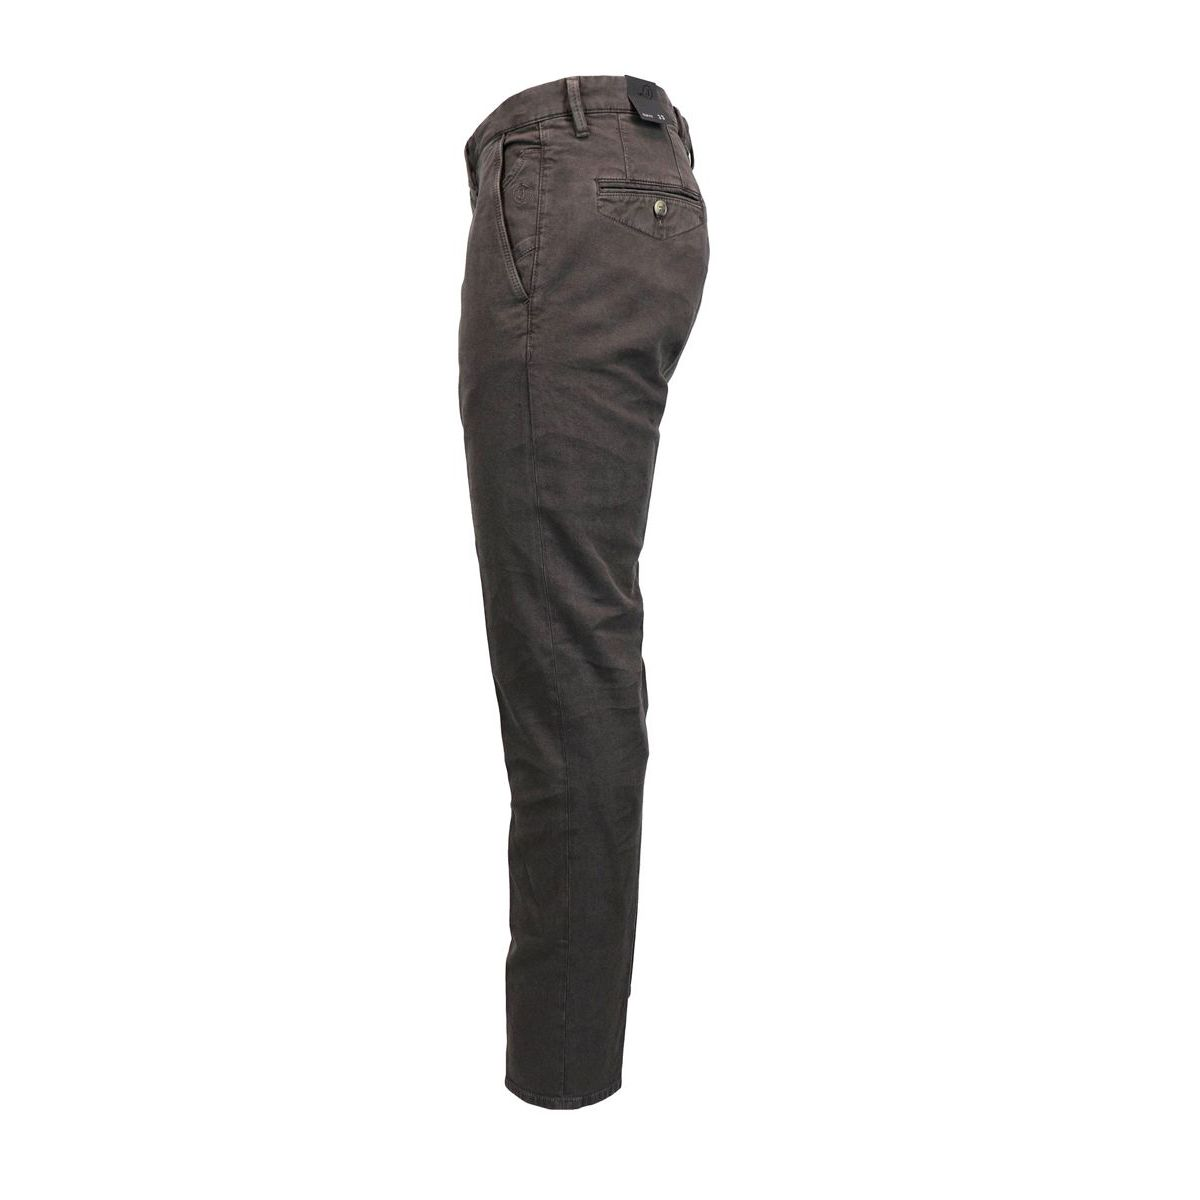 Cotton trousers with america pockets Brown Jeckerson